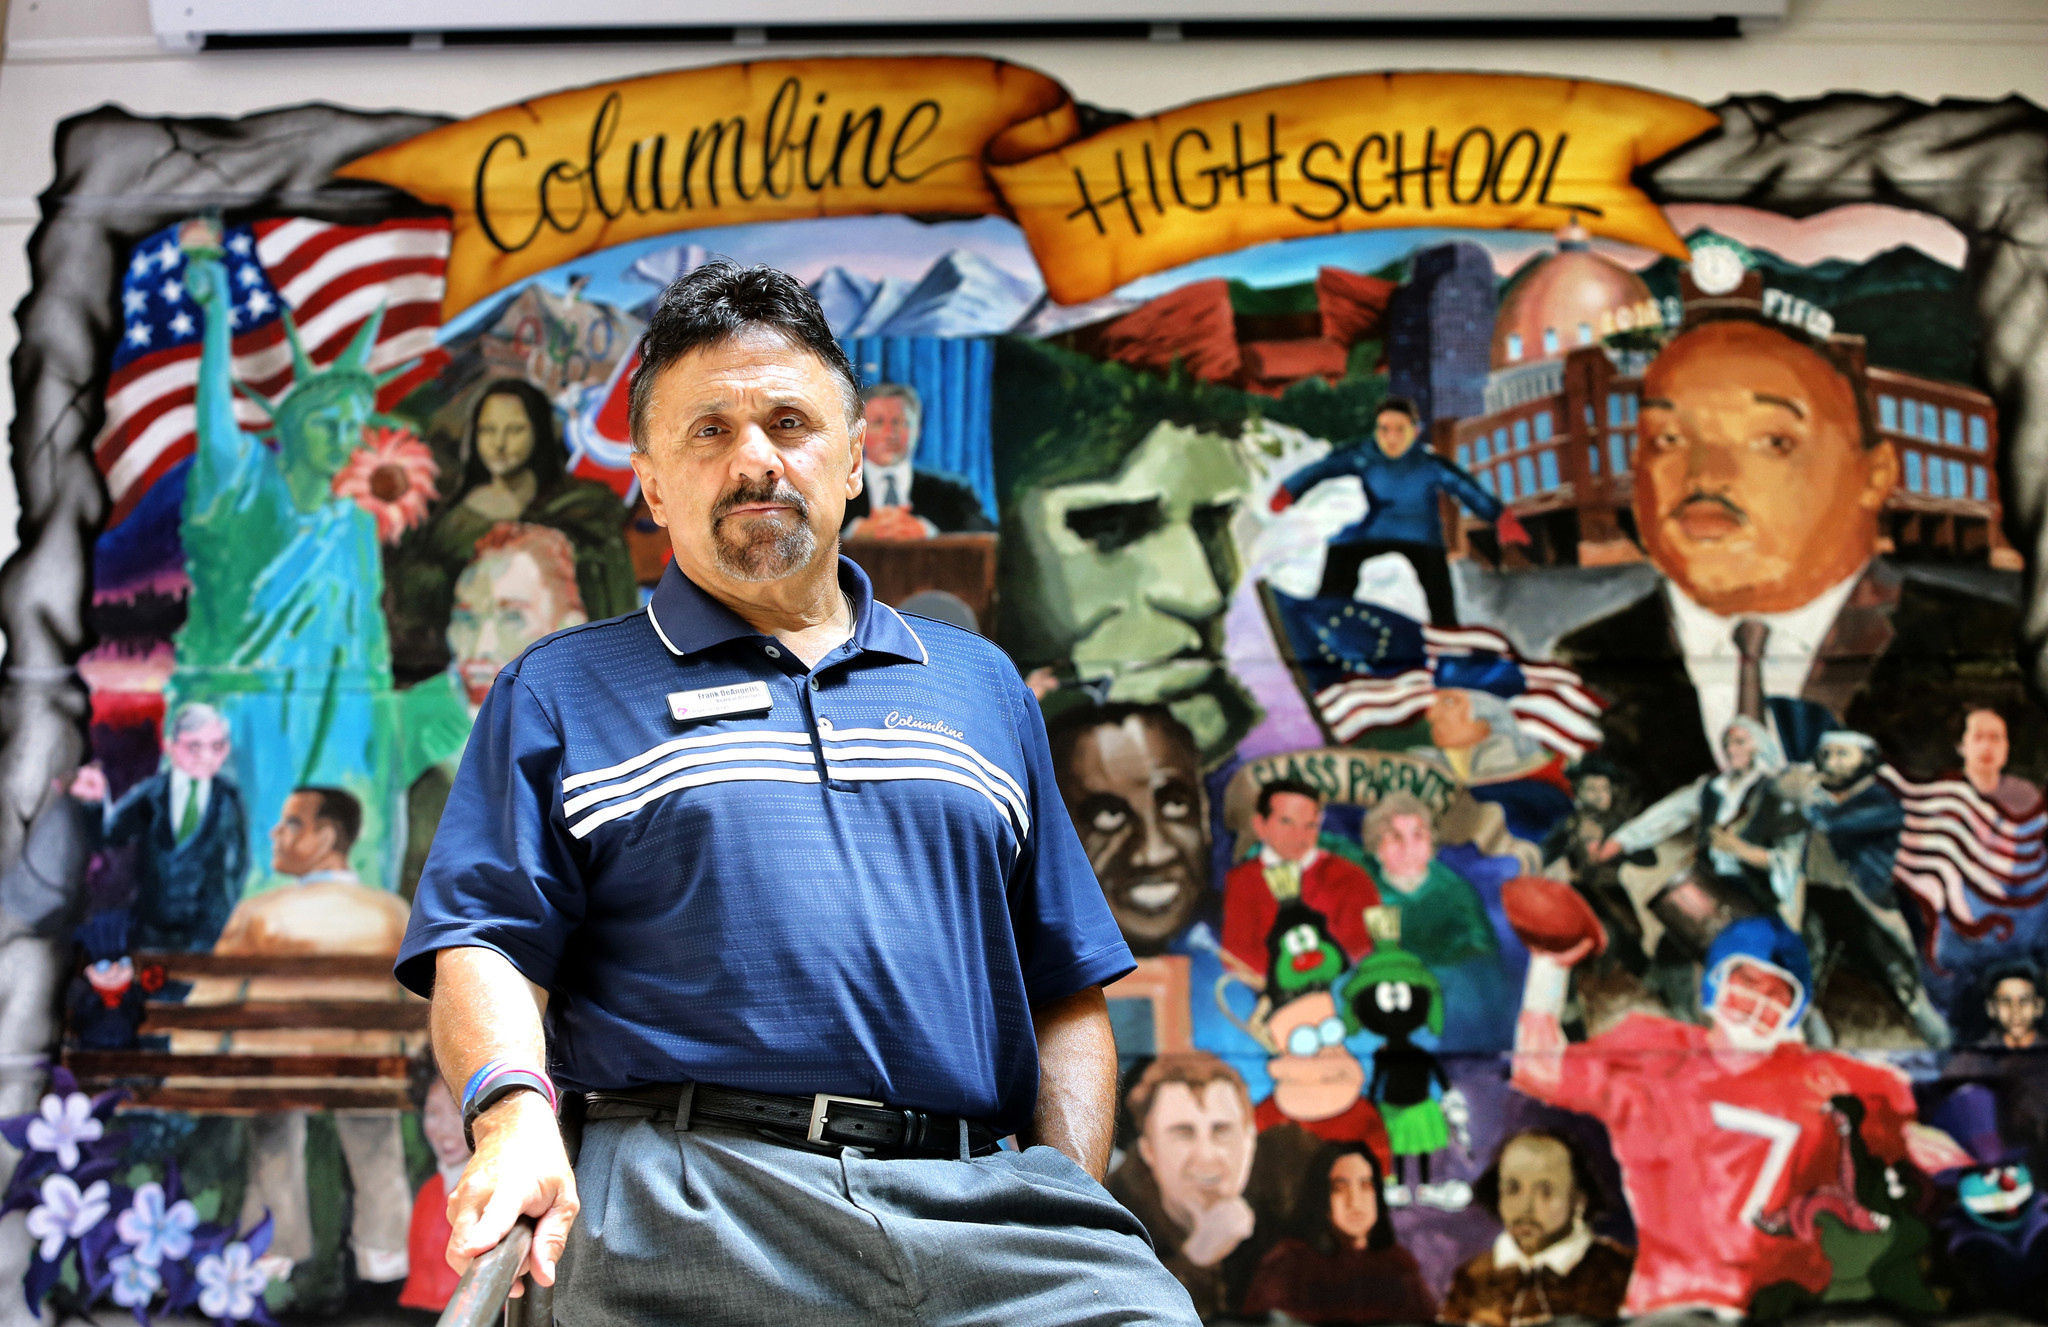 Frank DeAngelis, who was the principal at the time of the mass shooting at Columbine High School in 1999, recently visits the school where 12 students and one teacher were killed.